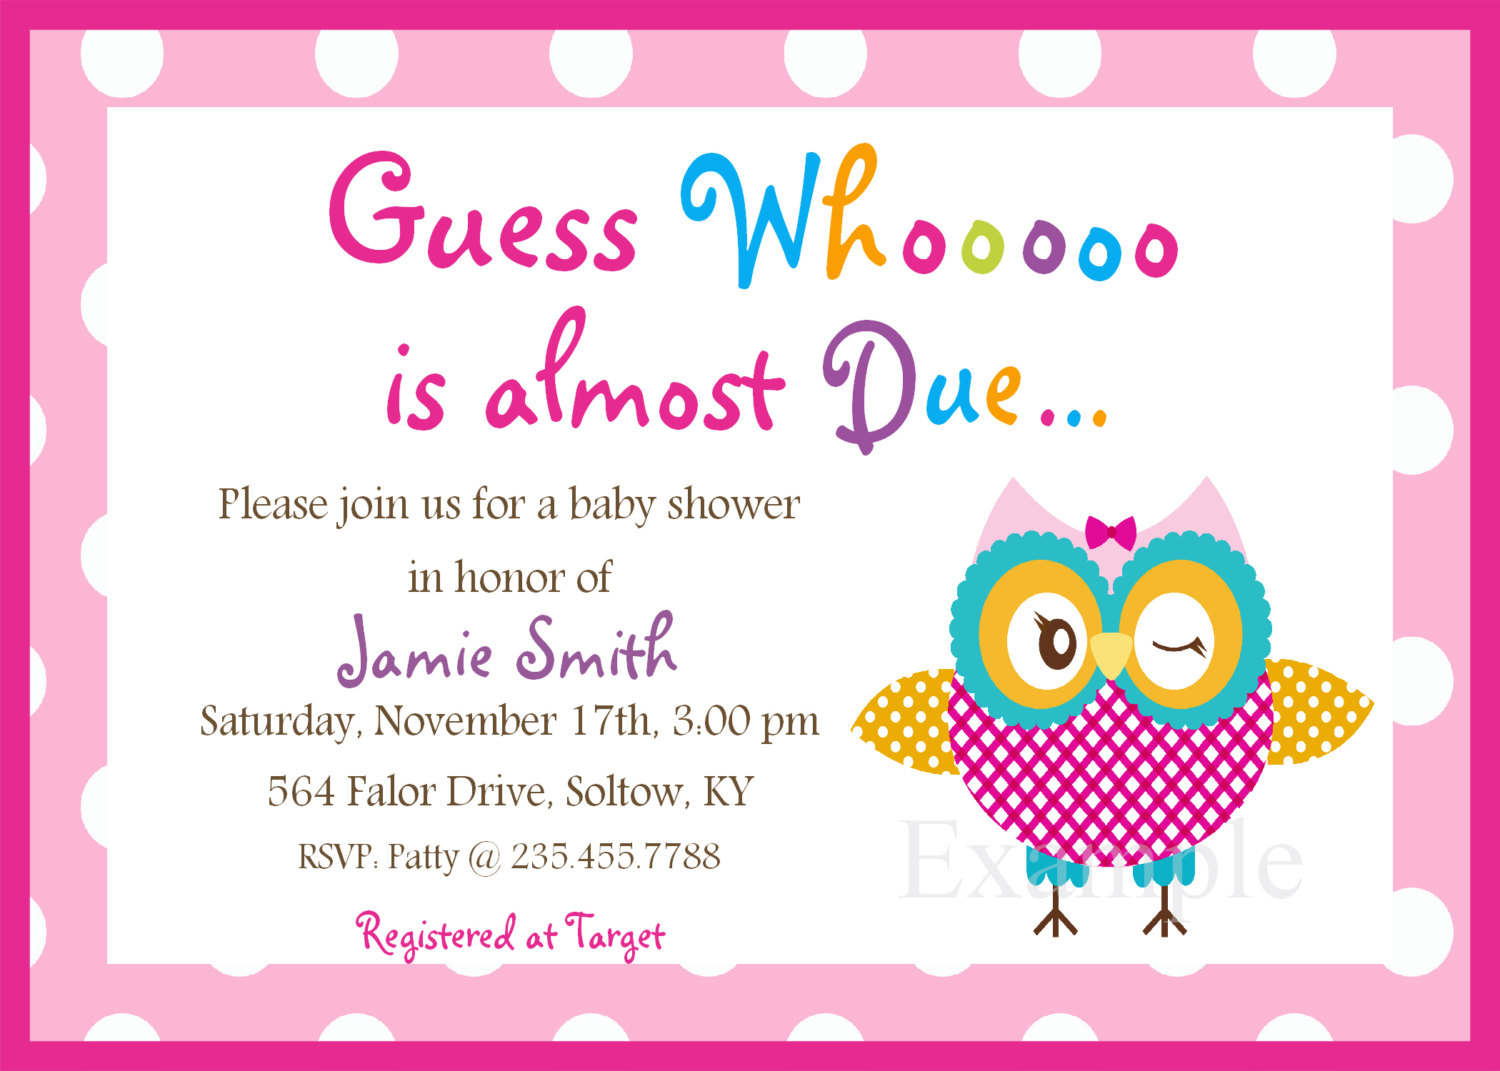 009 Free Editable Baby Shower Invitation Templates Canre Klonec Co - Baby Shower Cards Online Free Printable